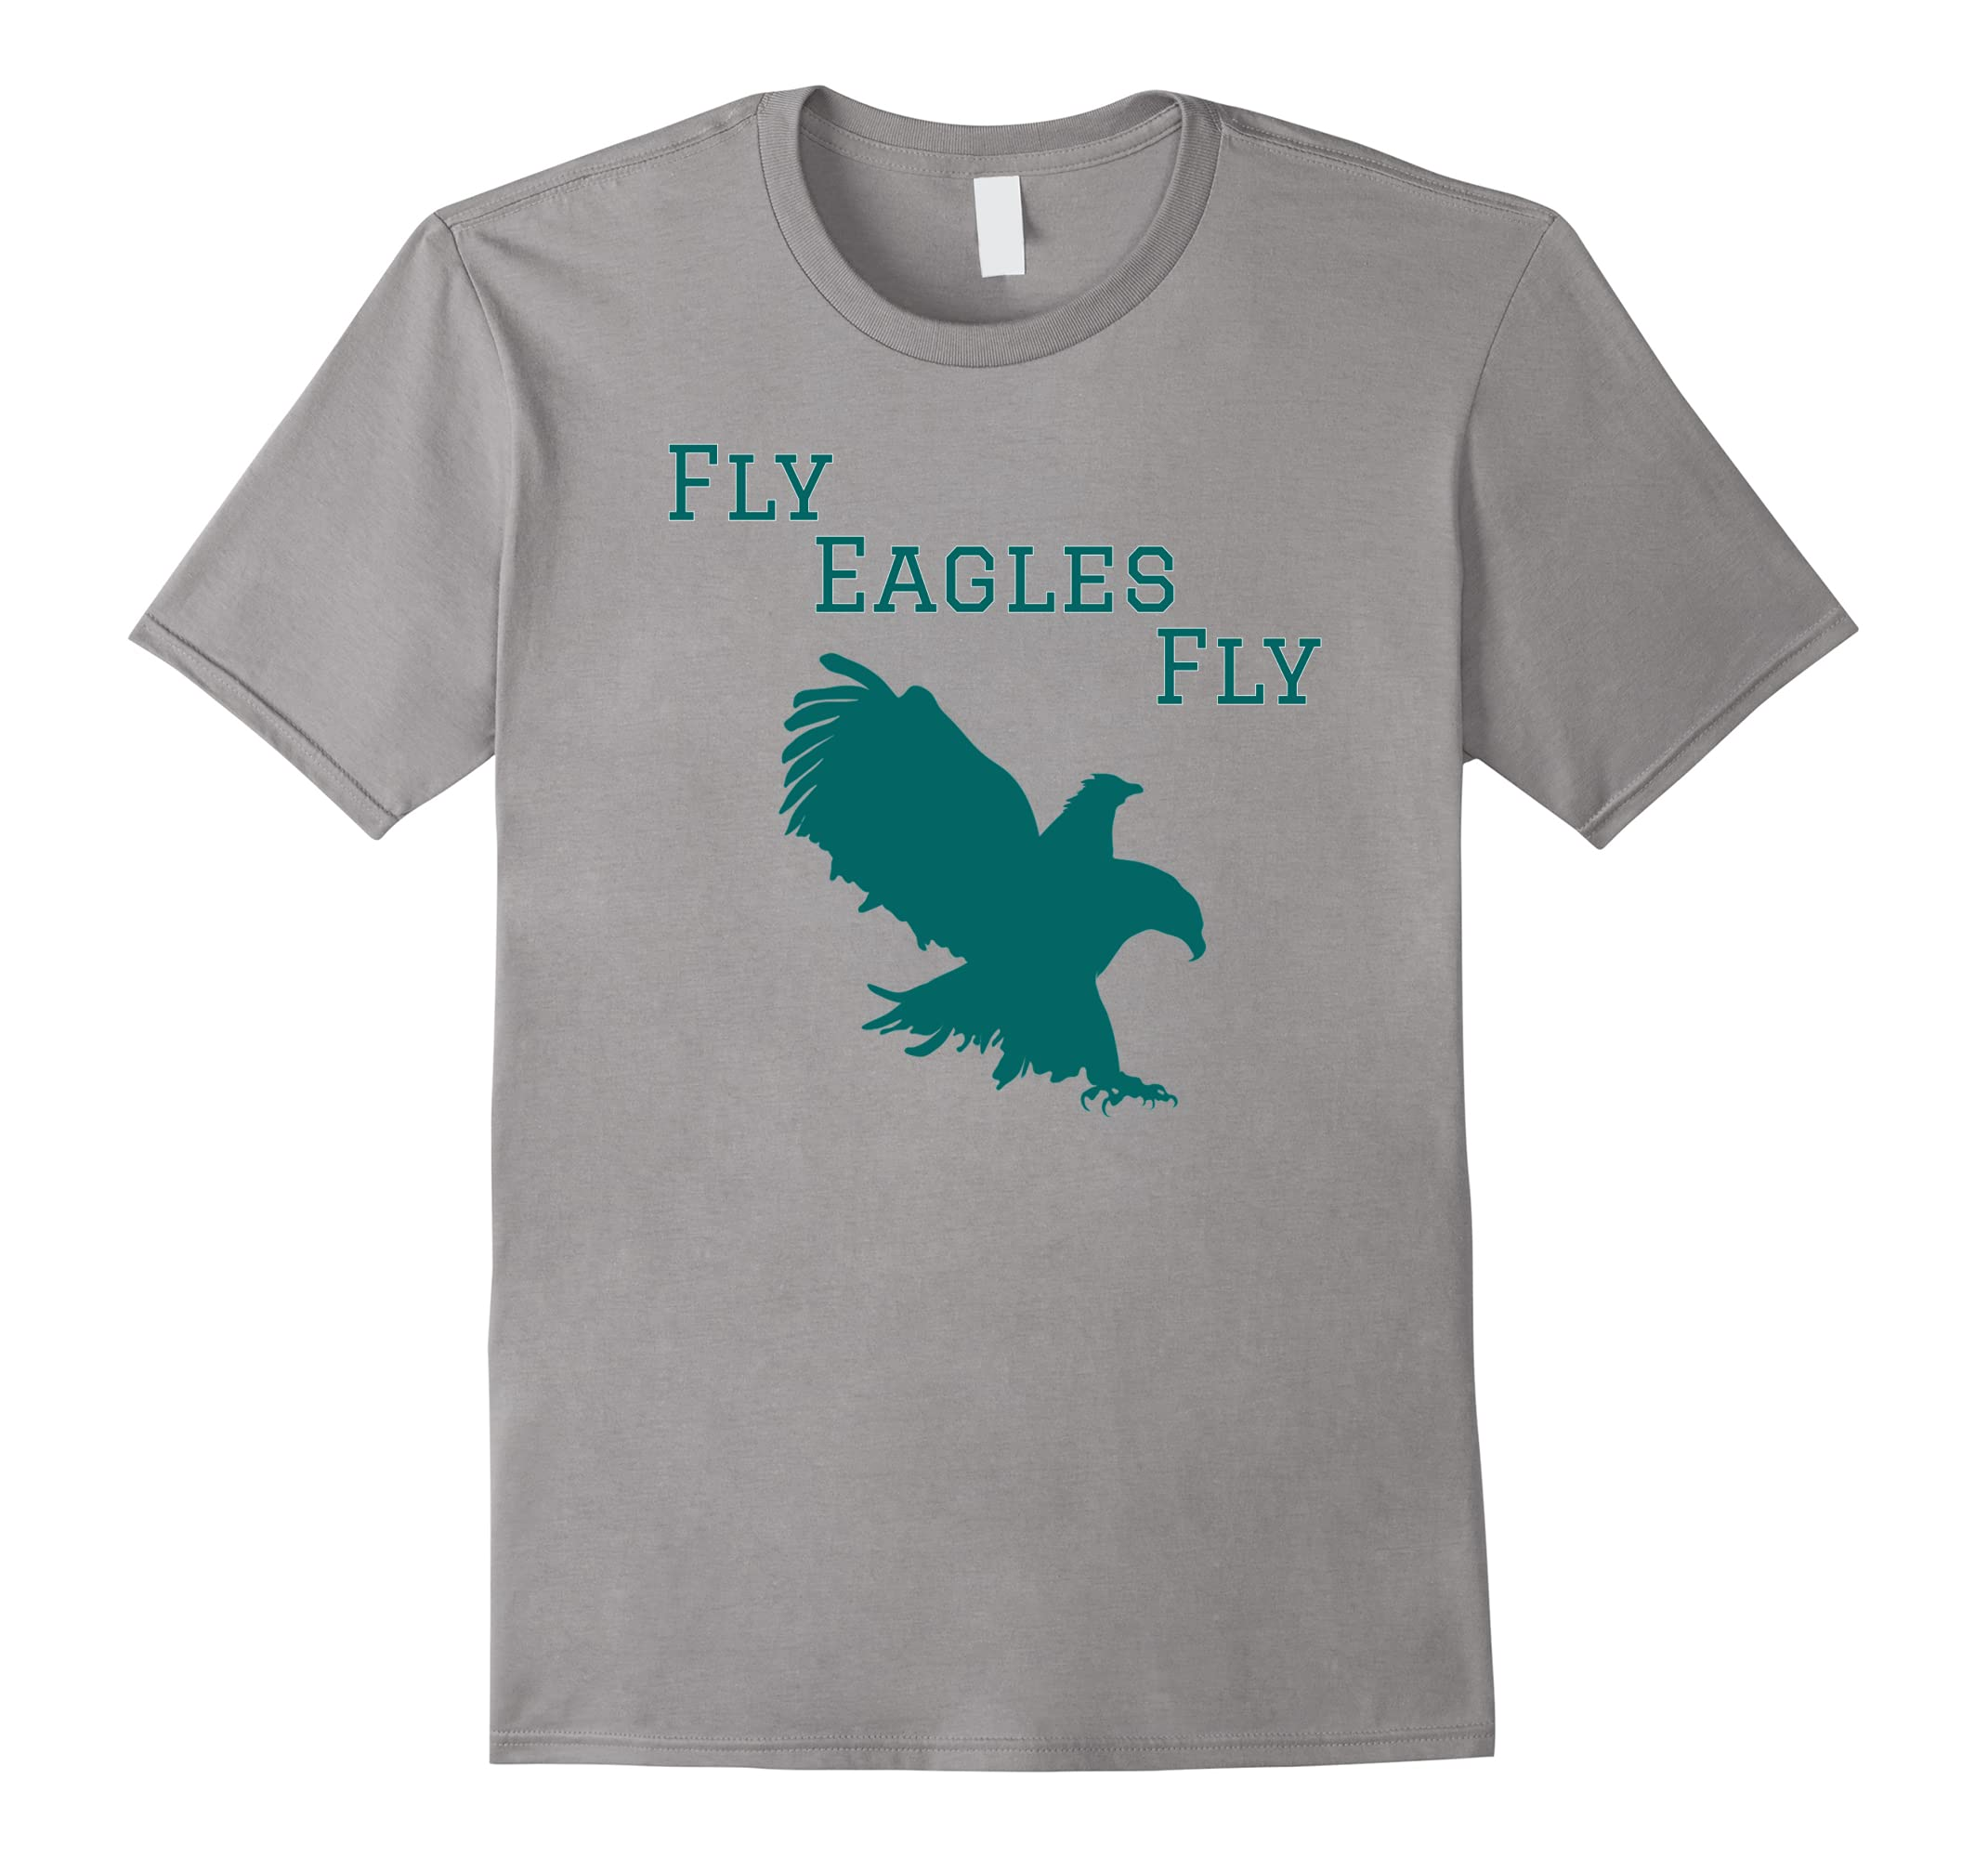 Fly Eagles Fly - With a Flying Eagle T-Shirt-ah my shirt one gift